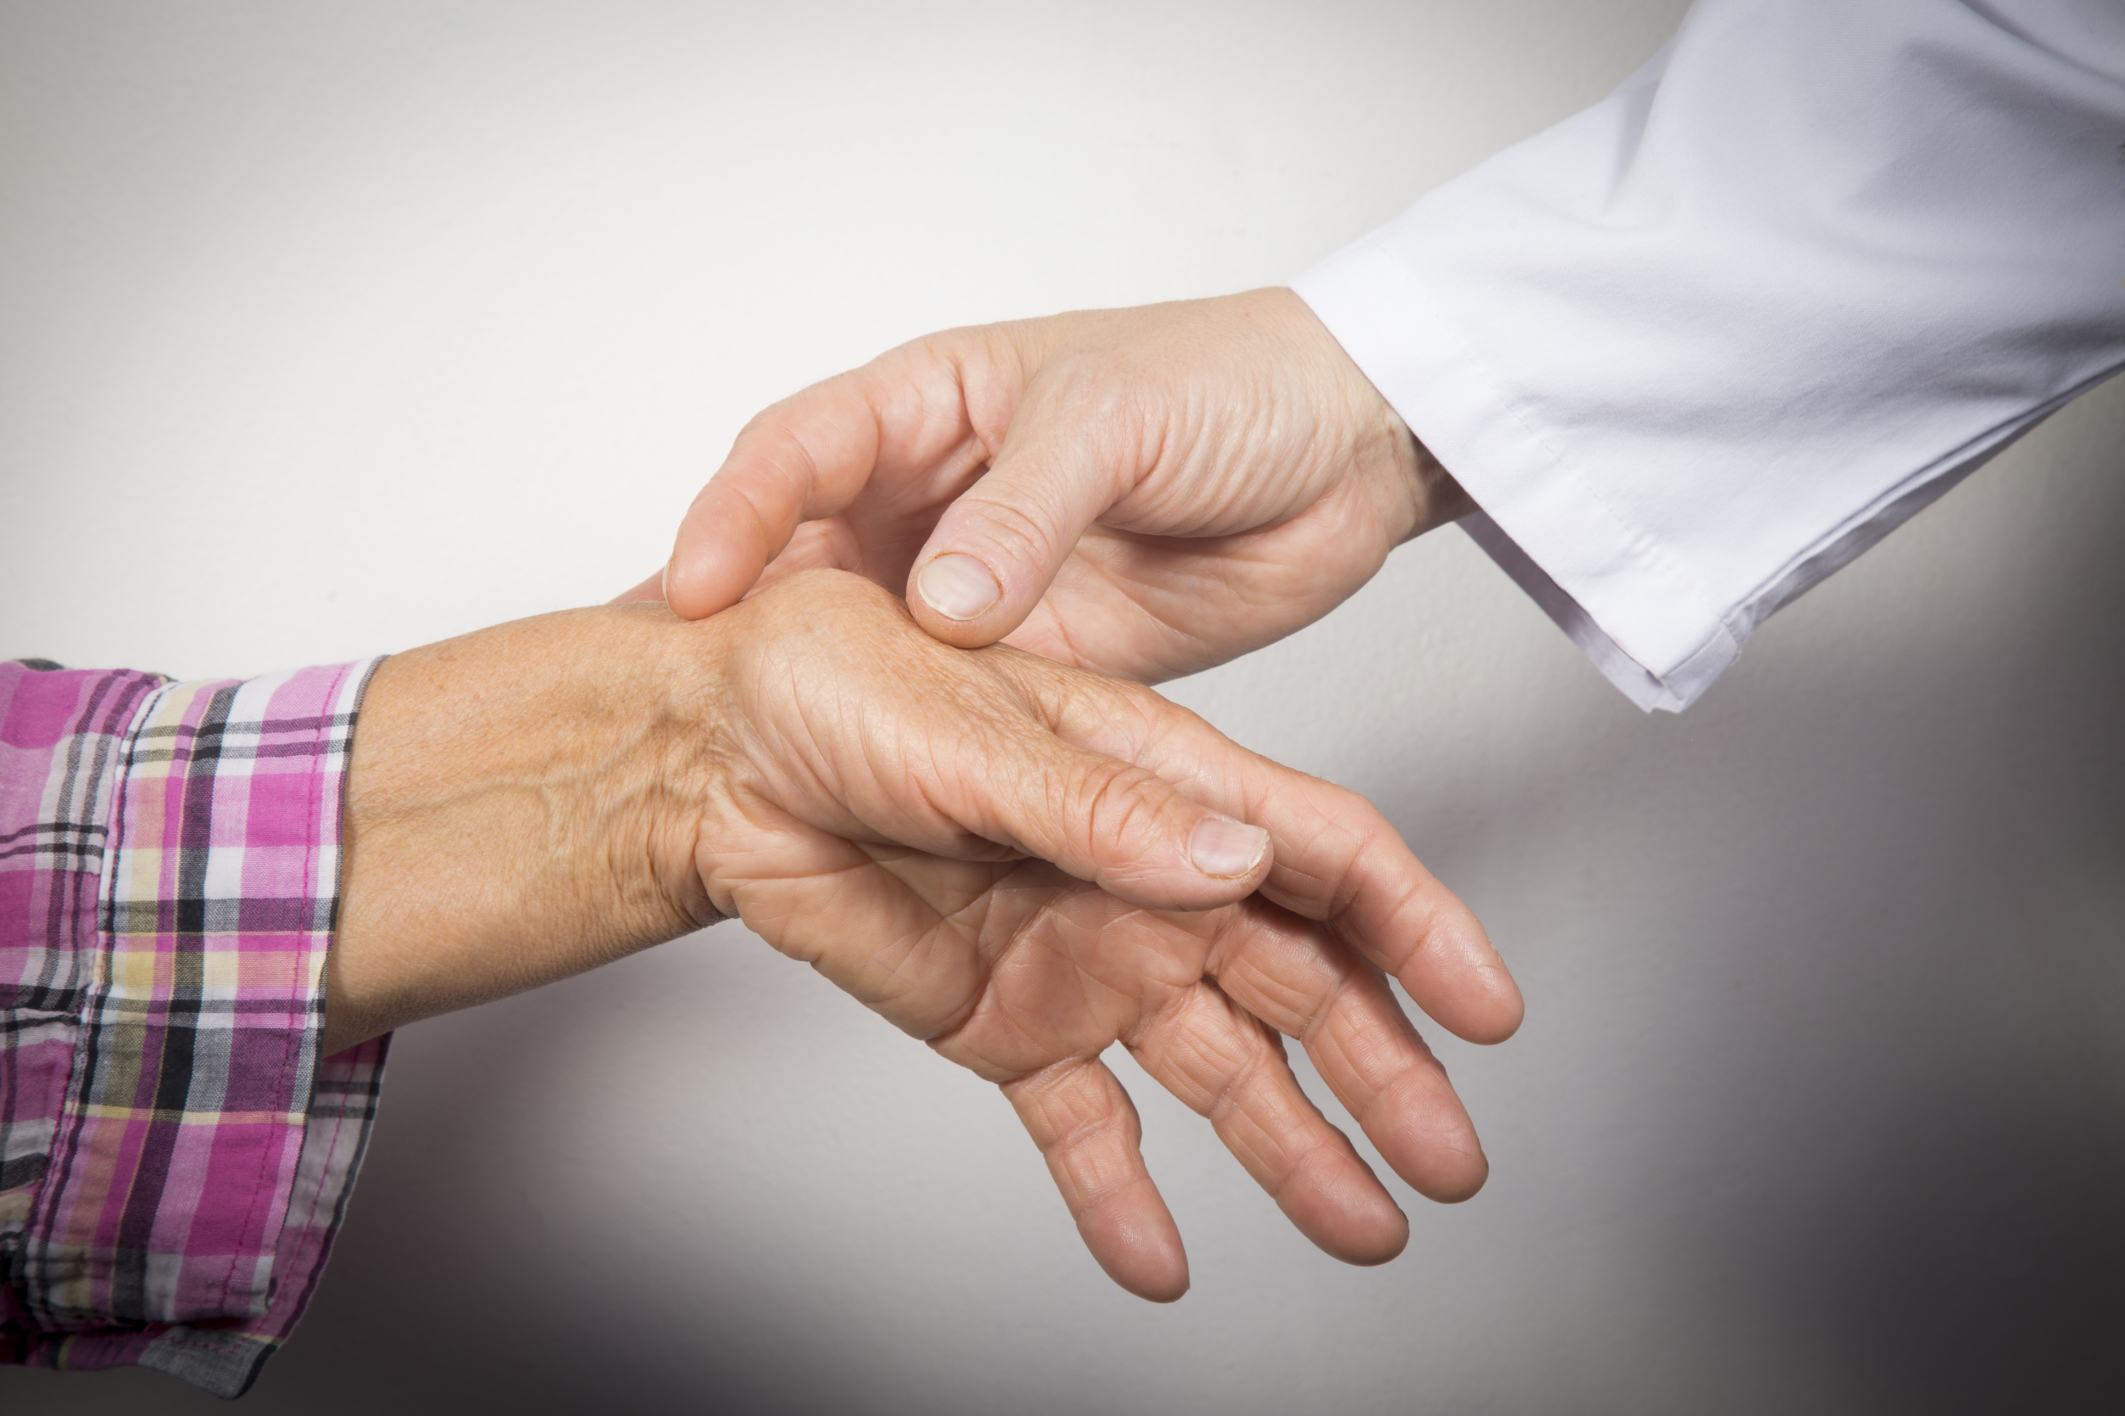 chronic arthritis and health Greater availability of health-related quality-of-life measures, an outcome of growing interest by the public, will be important in order to better monitor nonfatal, but chronic, disabling conditions such as arthritis, osteoporosis, and chronic back conditions.